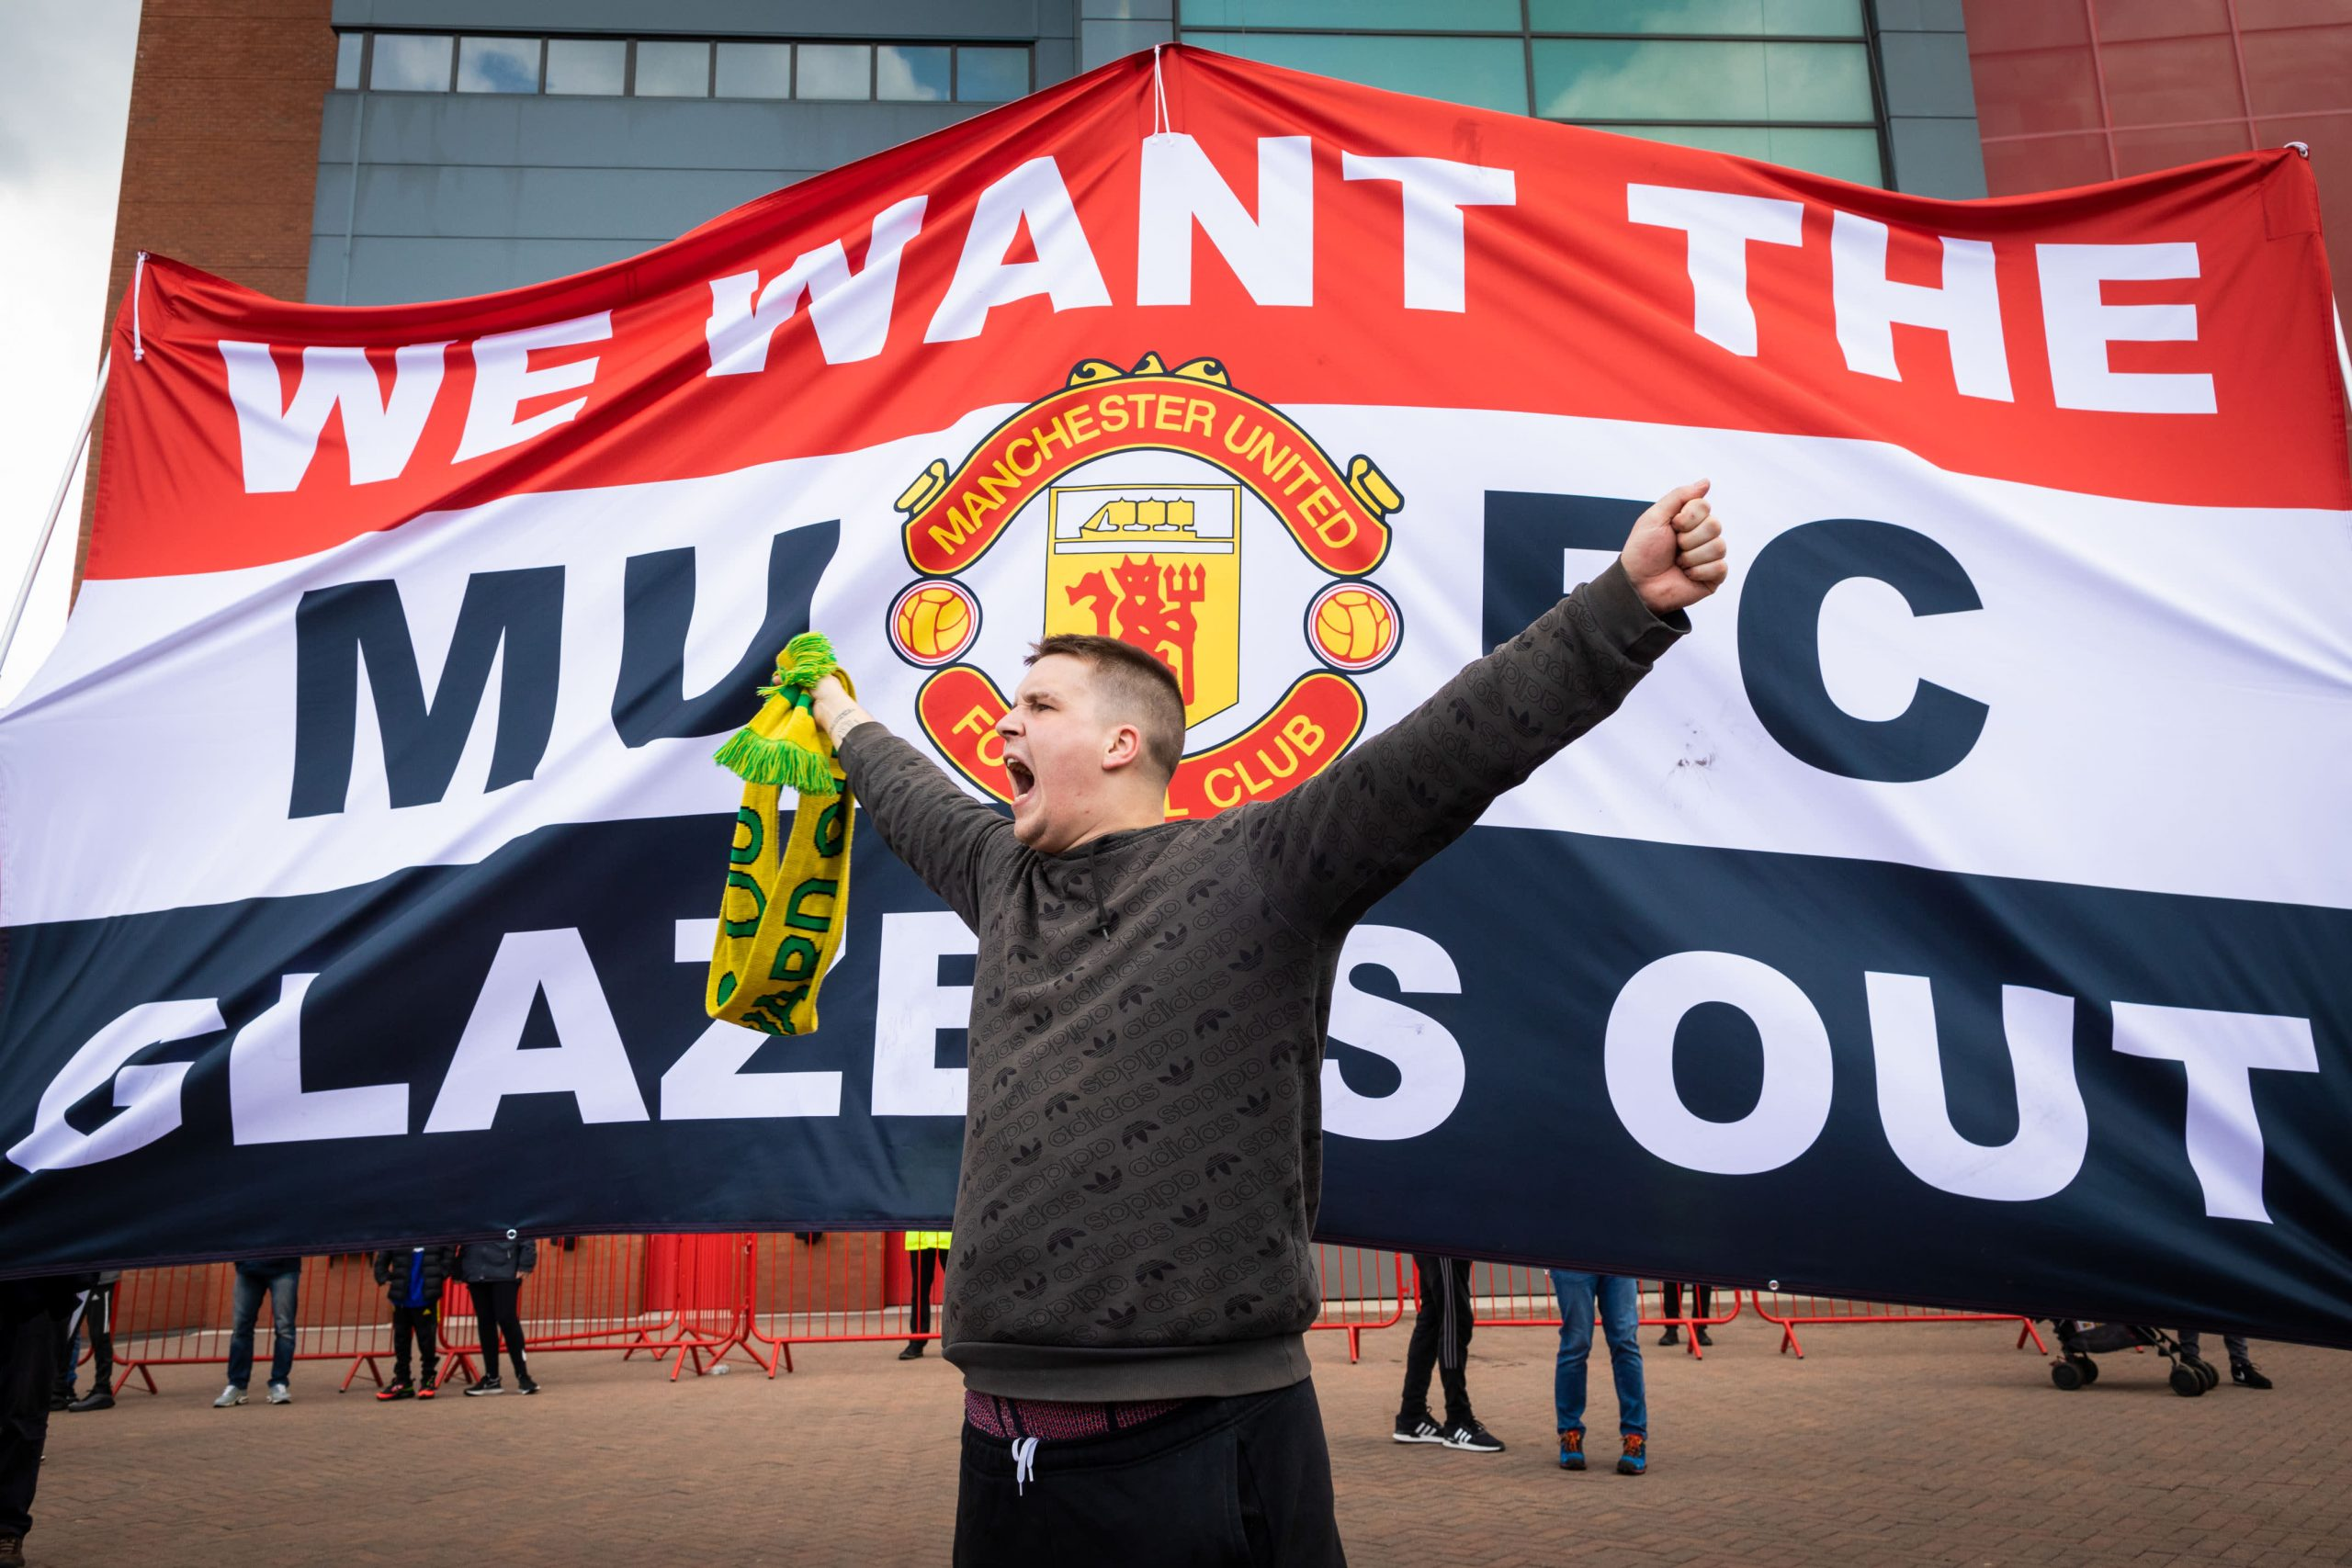 Manchester United vs Liverpool postponed after anti-Glazer protests